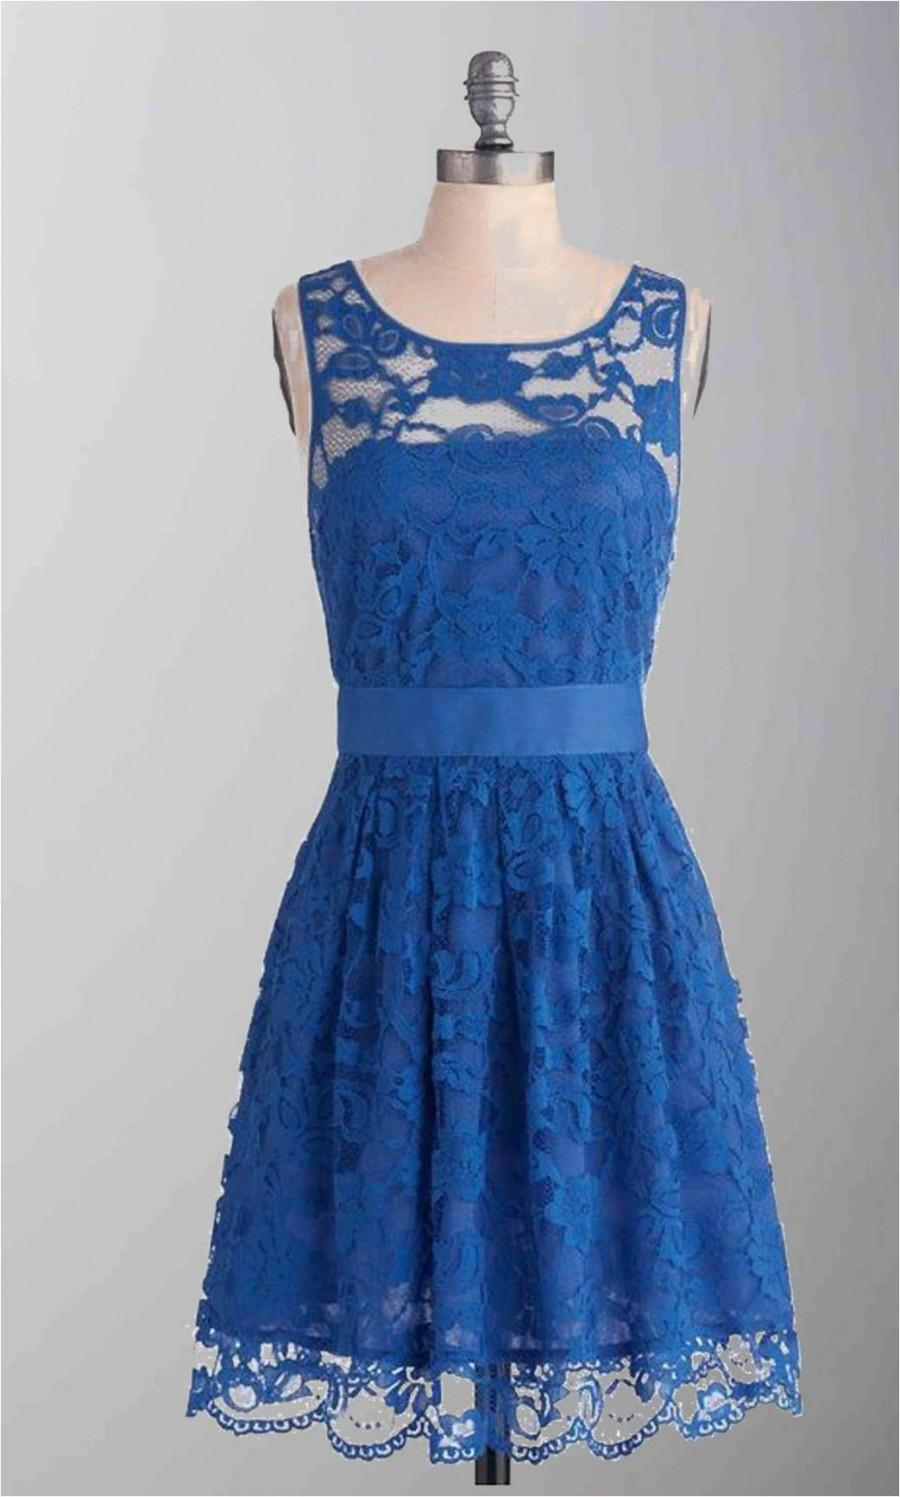 Свадьба - Blue Lace Short Bridesmaid Dress with Sash KSP287 [KSP287] - £89.00 : Cheap Prom Dresses Uk, Bridesmaid Dresses, 2014 Prom & Evening Dresses, Look for cheap elegant prom dresses 2014, cocktail gowns, or dresses for special occasions? kissprom.co.uk offers